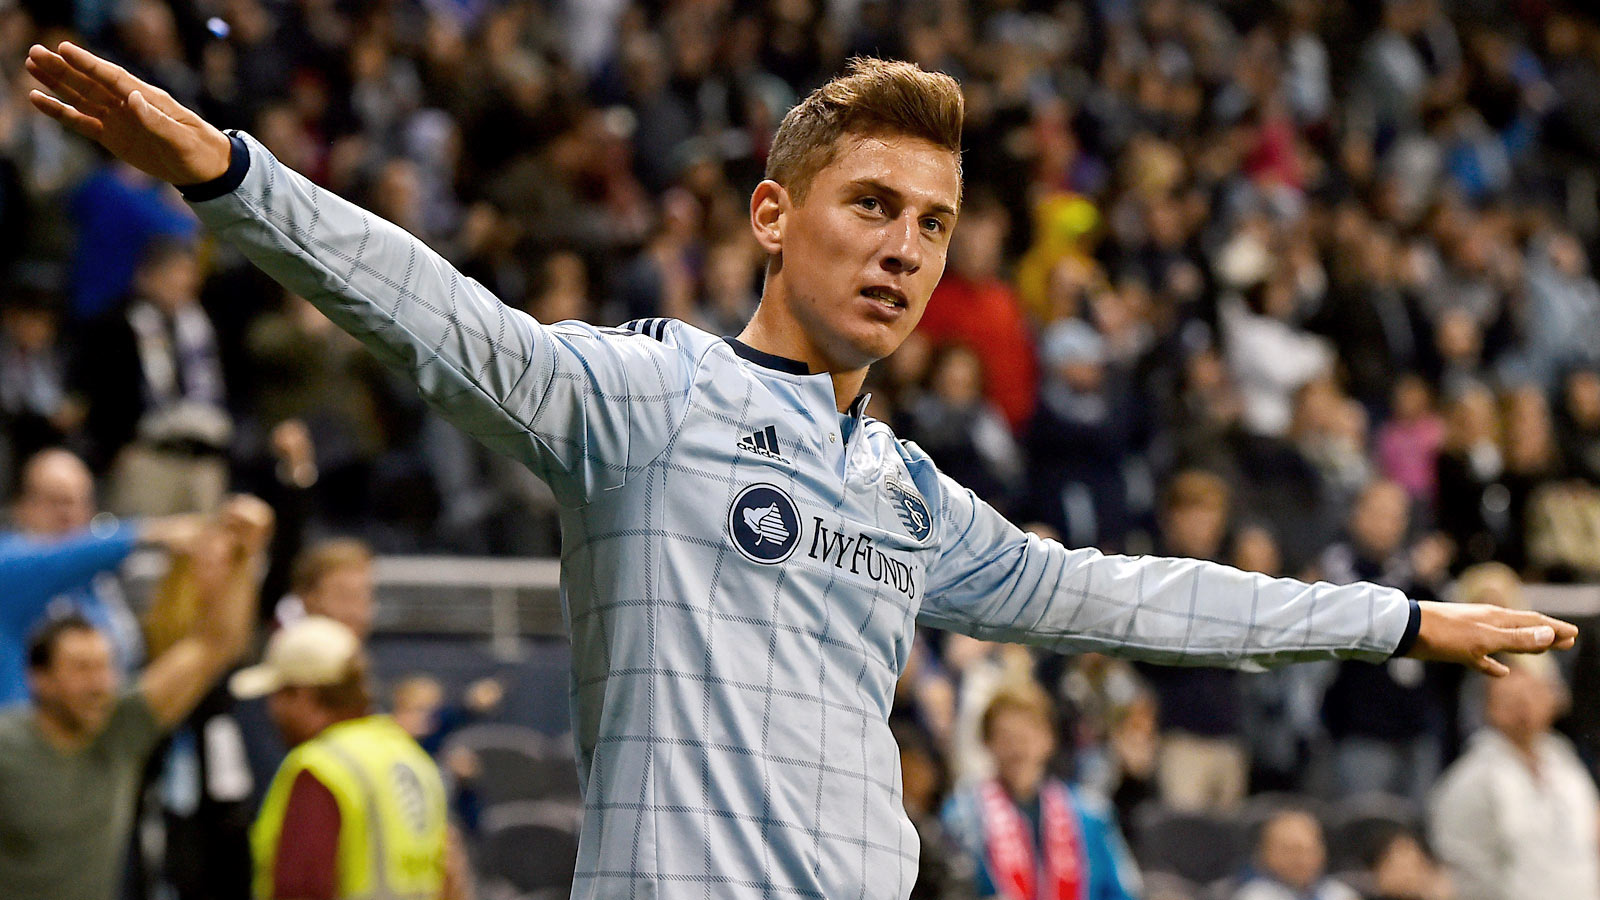 Krisztian Nemeth is probably going to score a lot of goals in Qatar